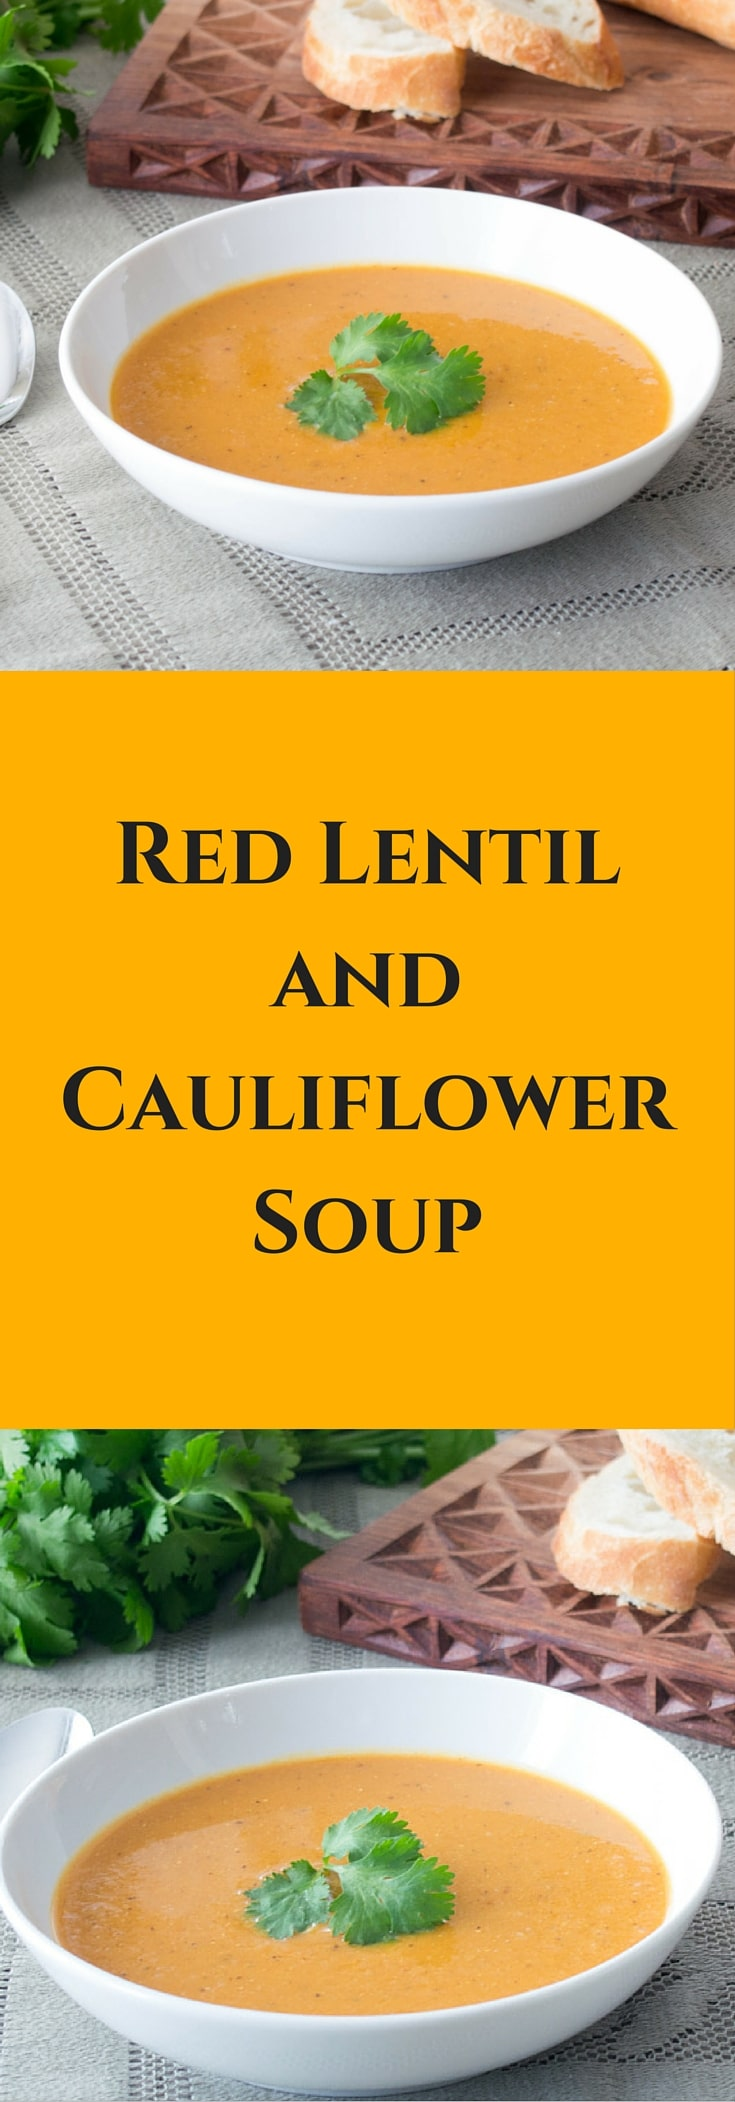 This recipe for curried Red Lentil and Cauliflower Soup is easy, healthy, flavourful, and perfect for warming you up on a cold day.